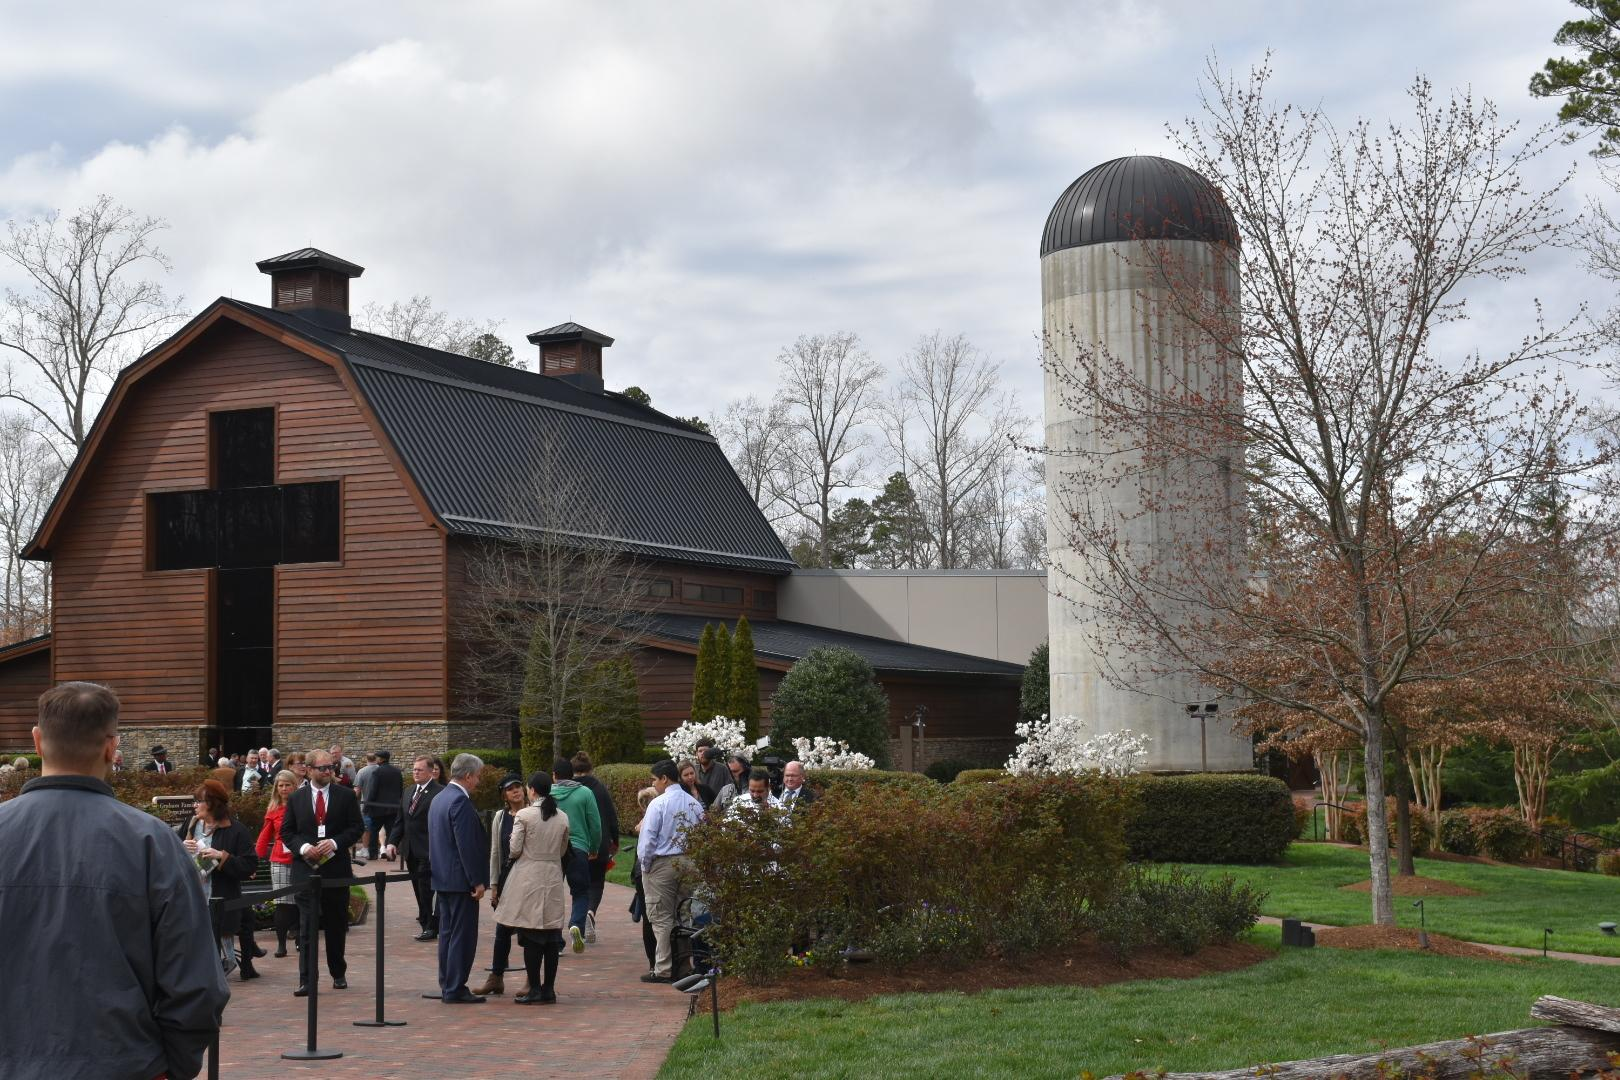 People gather at the Billy Graham Library in Charlotte, North Carolina, on Feb. 26, 2018, to pay respects to the late Reverend Billy Graham, who died on Feb. 21. (Photo credit: WLOS Staff)